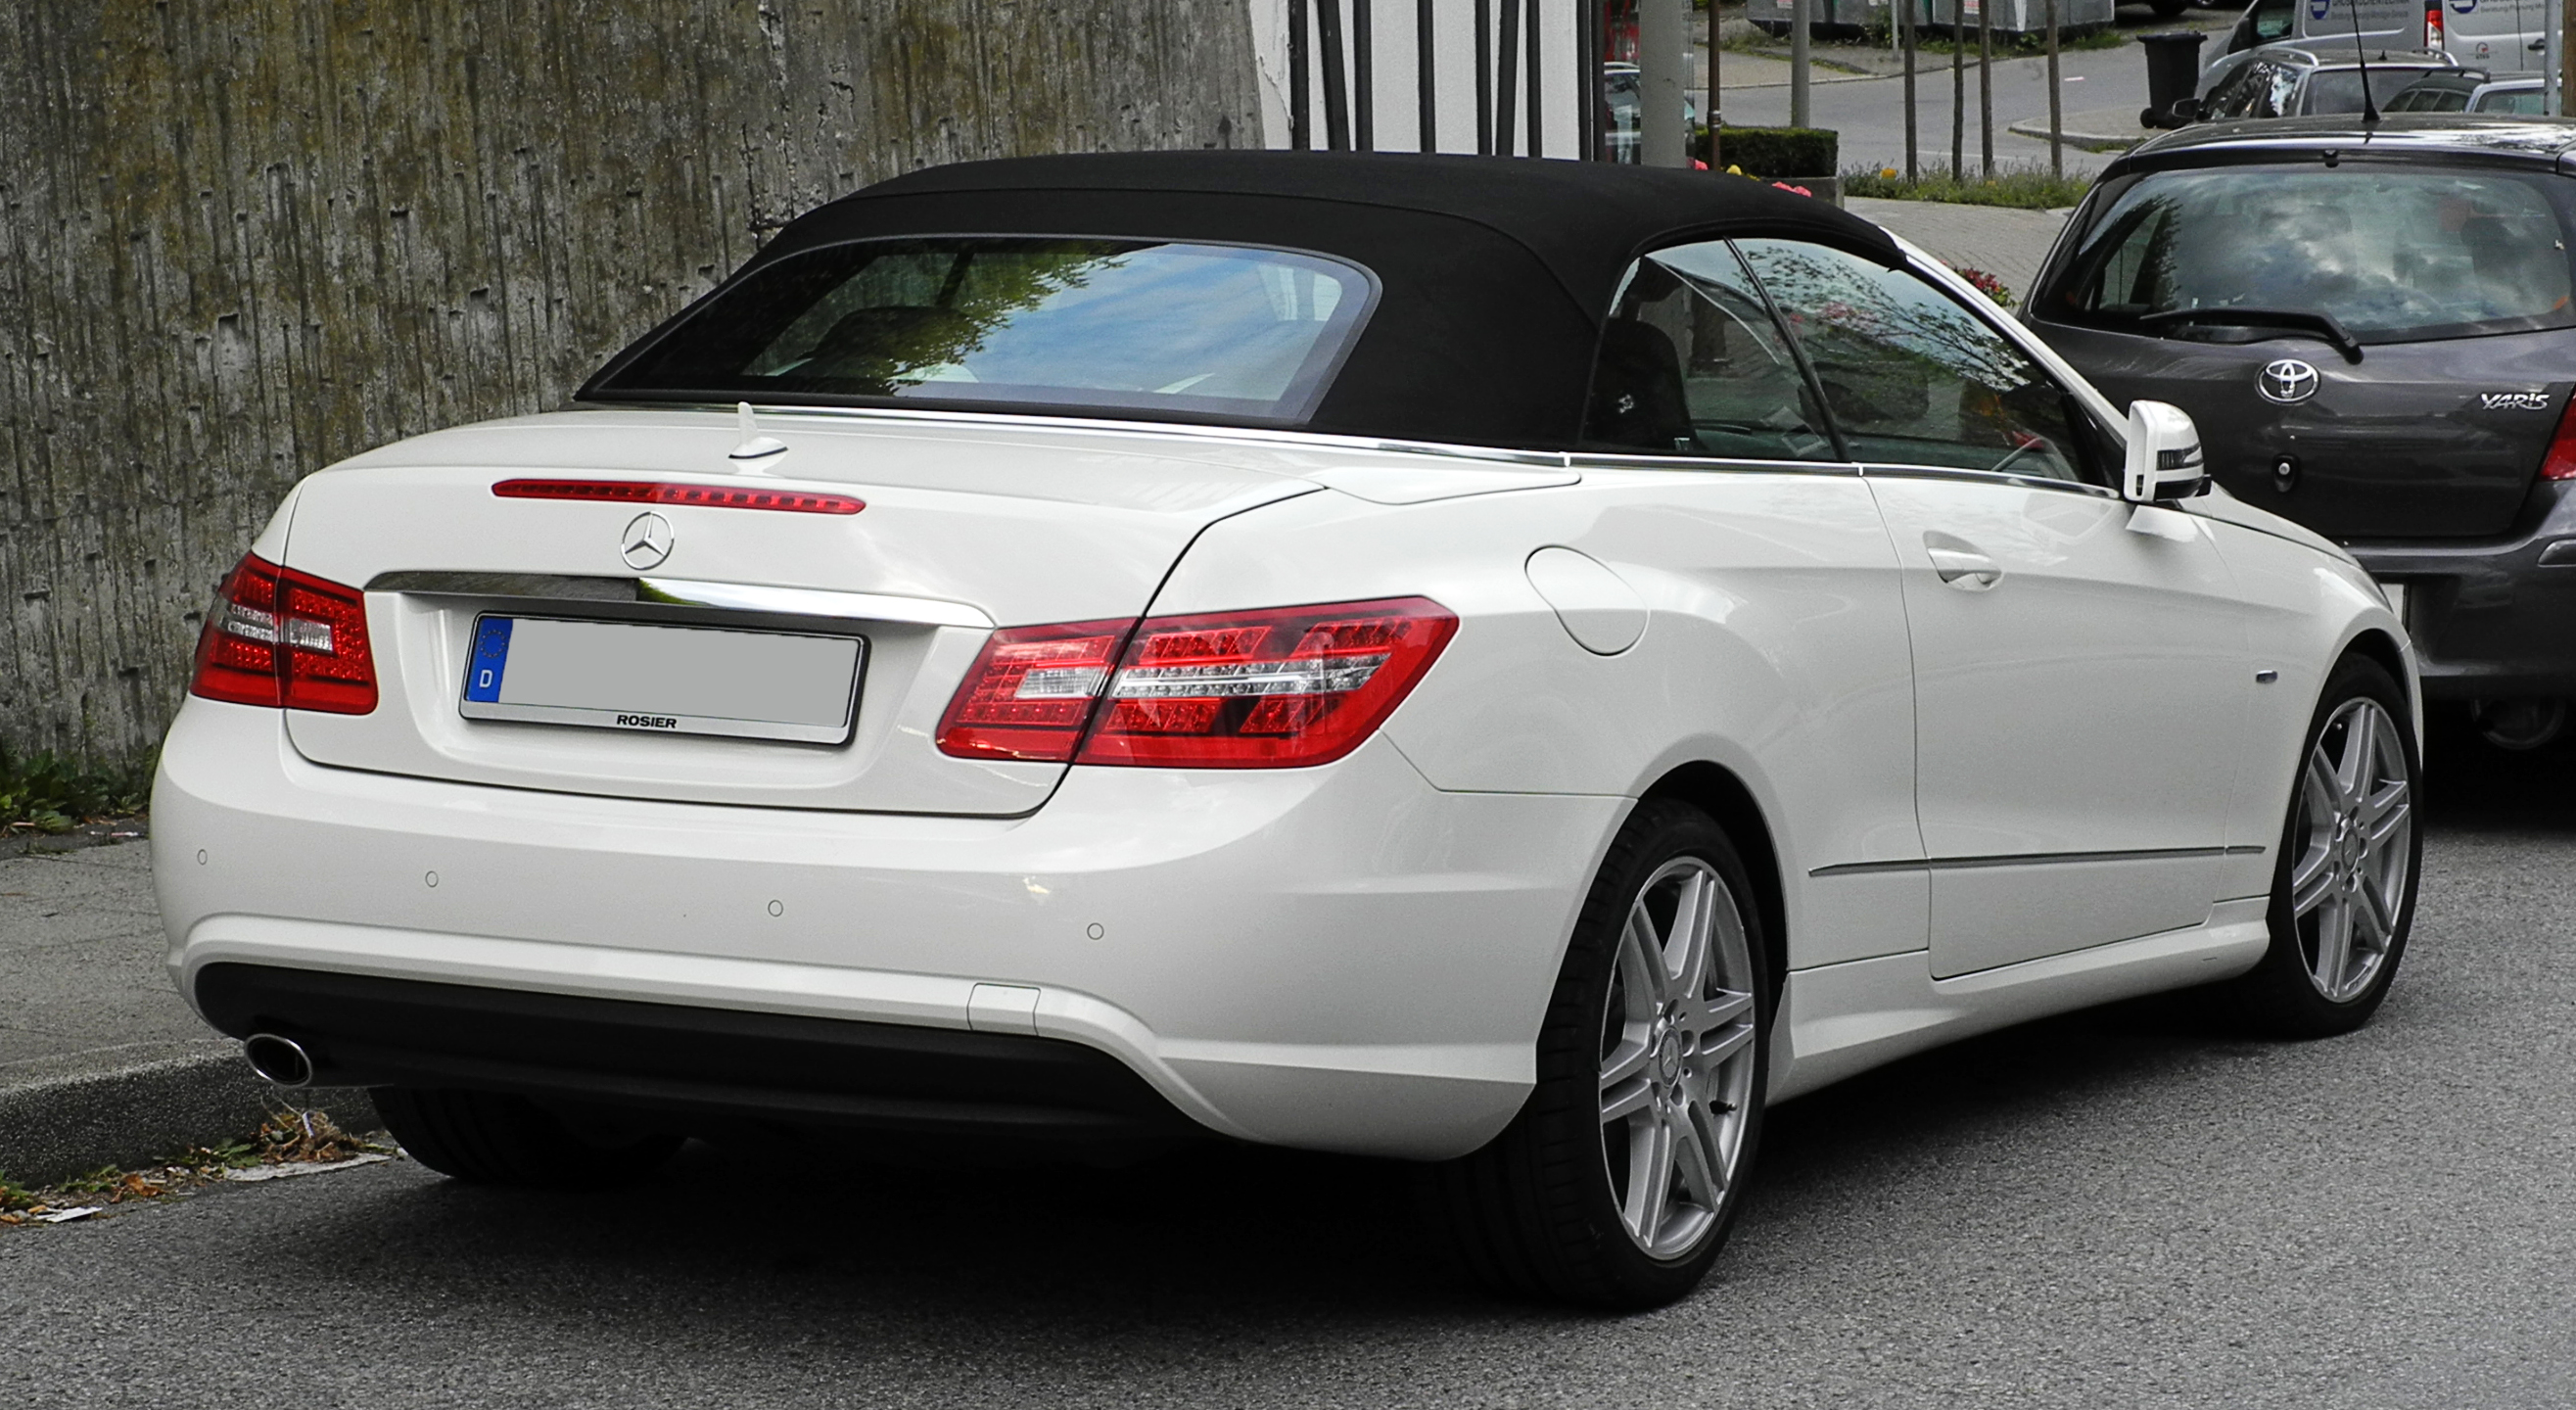 2015 Mercedes Benz C Class New Car Review in addition File Mercedes Benz E 250 CGI BlueEFFICIENCY Cabriolet Sport Paket AMG  A 207   E2 80 93 Heckansicht  1   4  Juni 2011  W C3 BClfrath furthermore How To Play Stream Music From Phone To Mercedes Car Stereo in addition 2011 additionally Mercedes Benz Cls 2006 2011 Fuse Box Location Diagram Assignments. on mercedes benz e 350 convertible